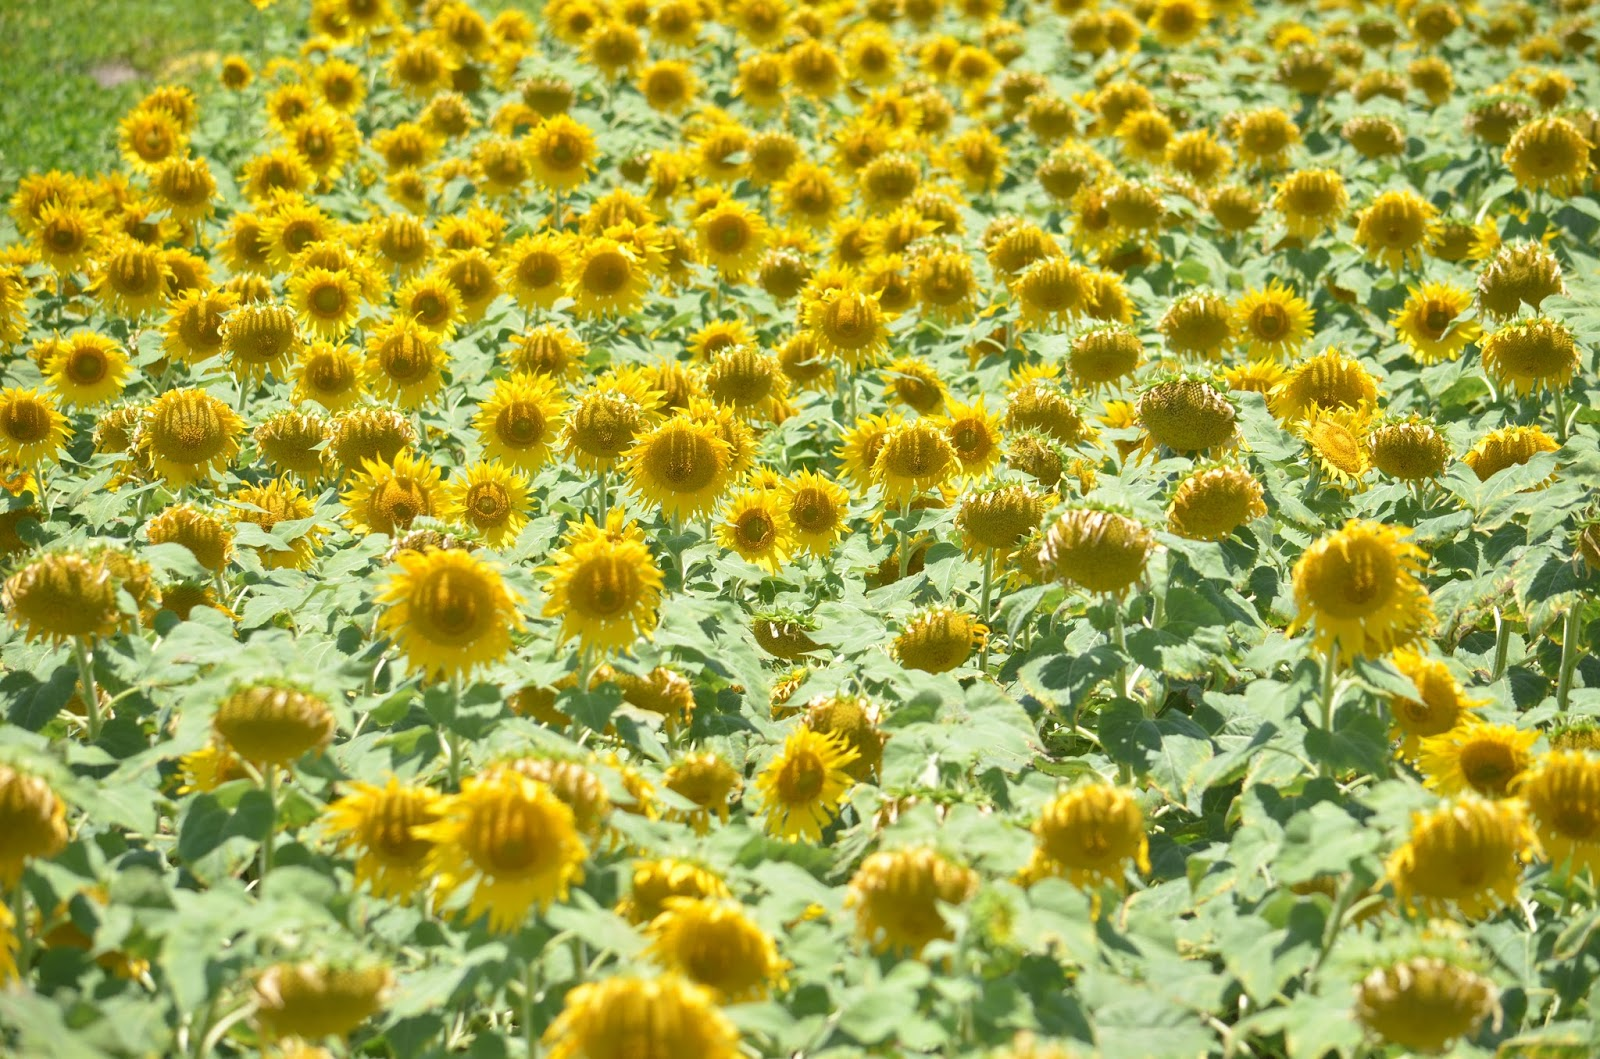 Dream of Sunflowers, what dreams of Sunflowers in a dream to see 29